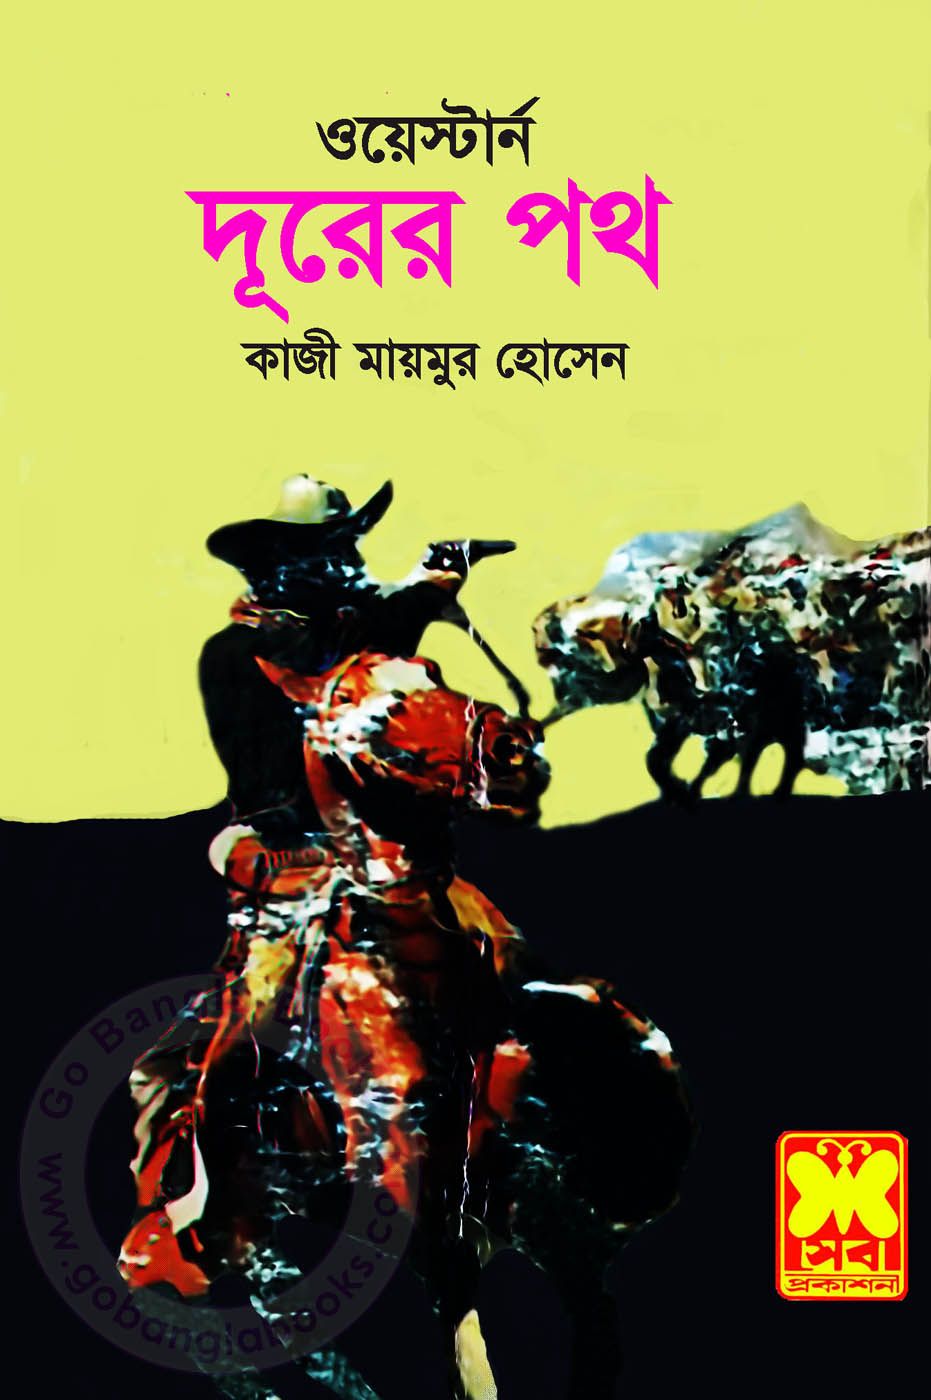 Durer Poth by Qazi Maimur Hossain (Western Series) ~ Free Download